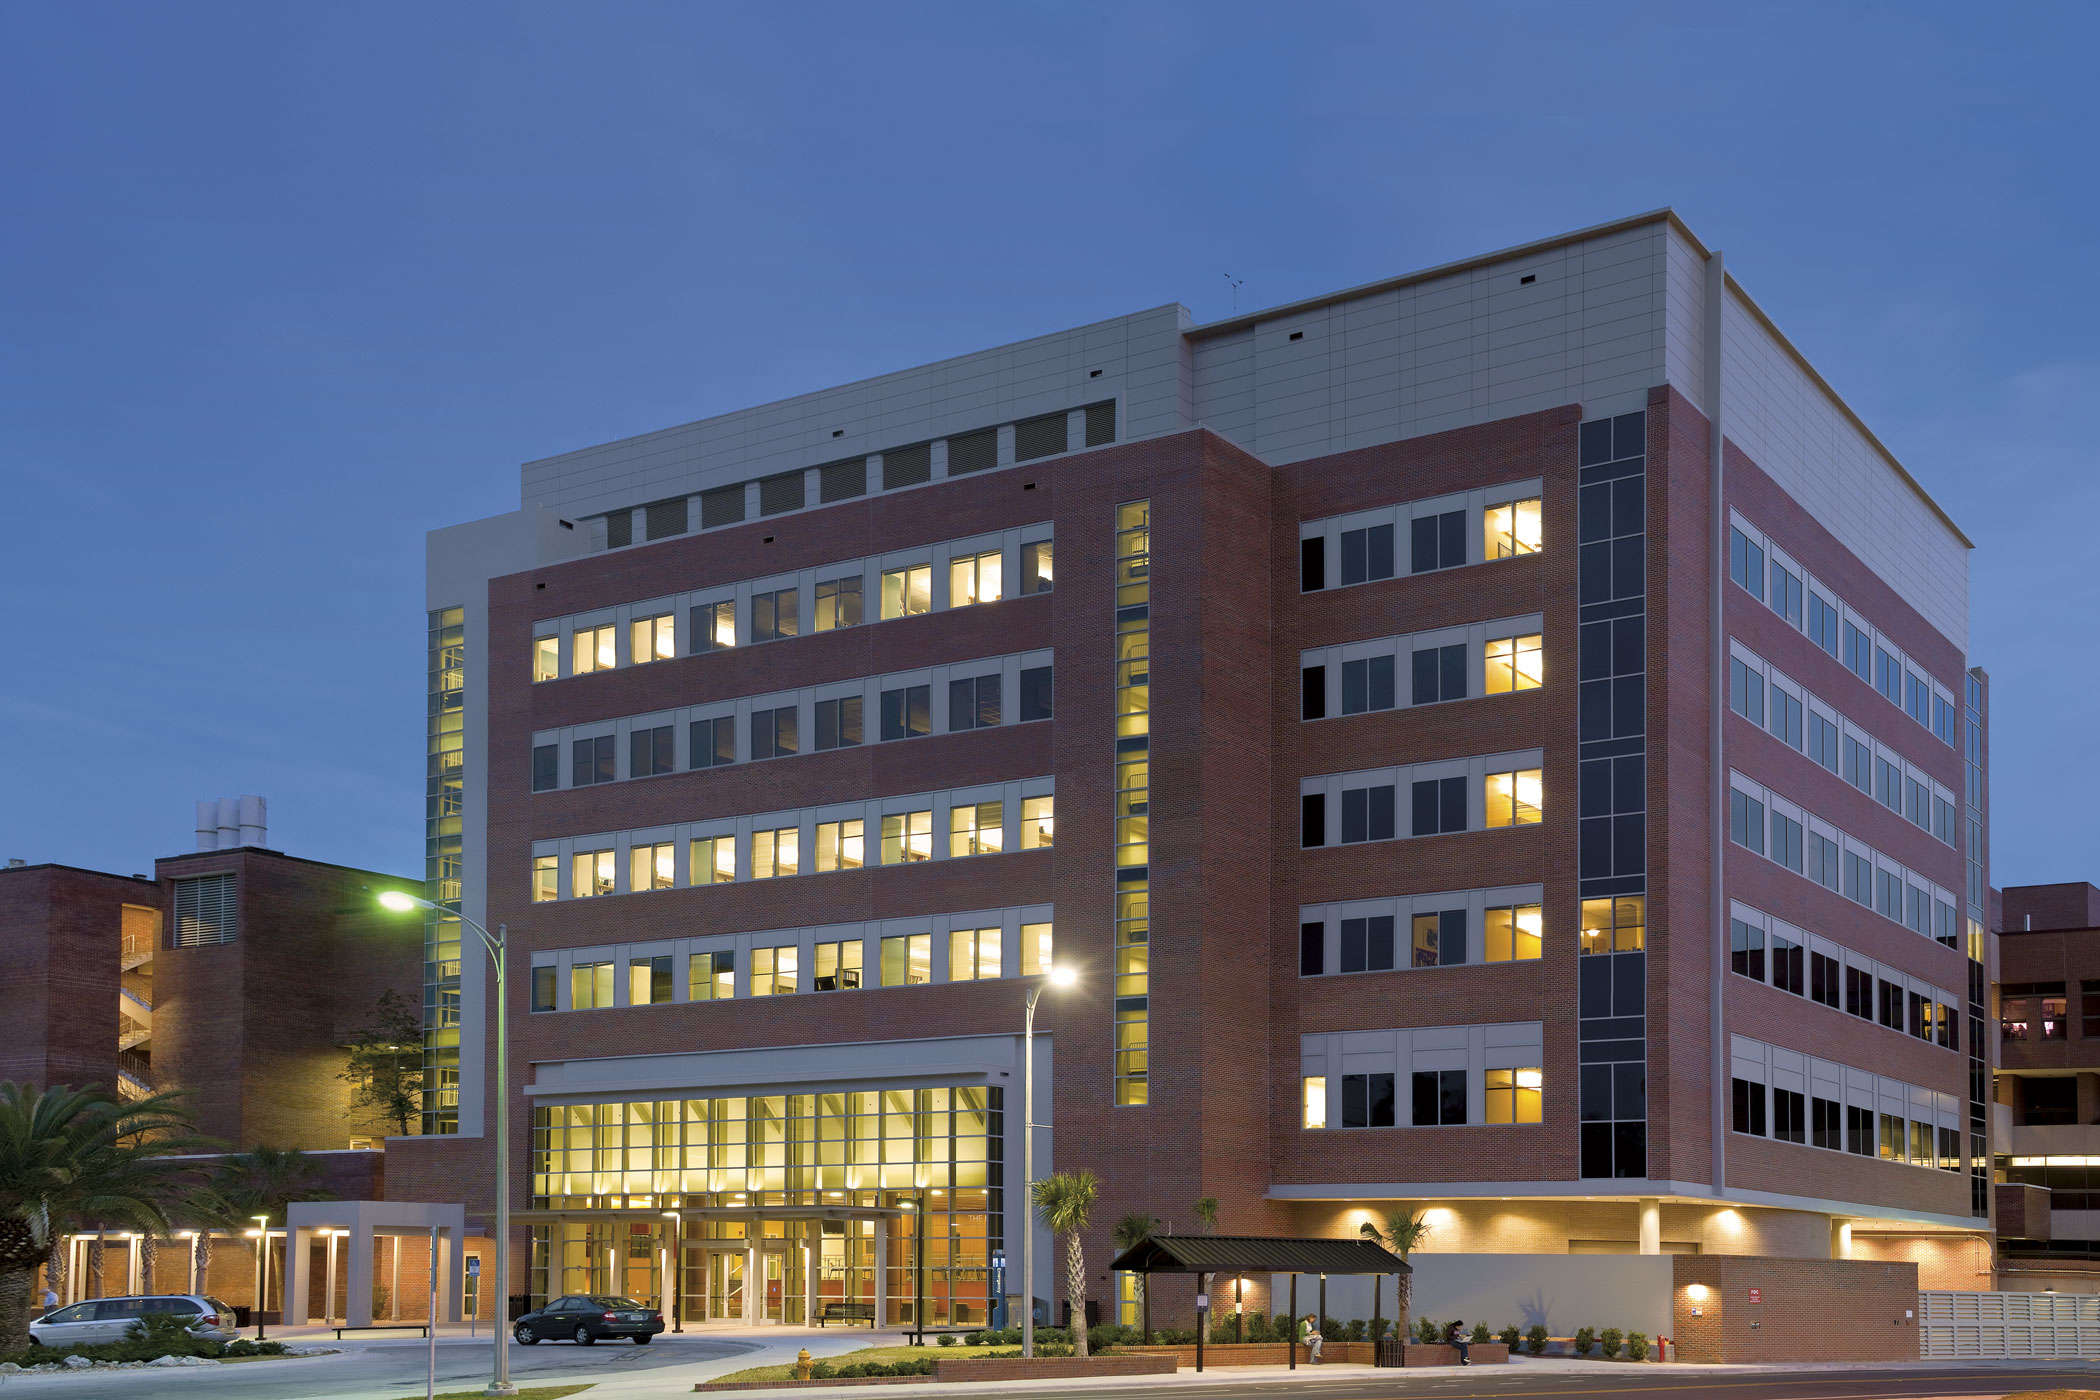 University of Florida Biomedical Science Building